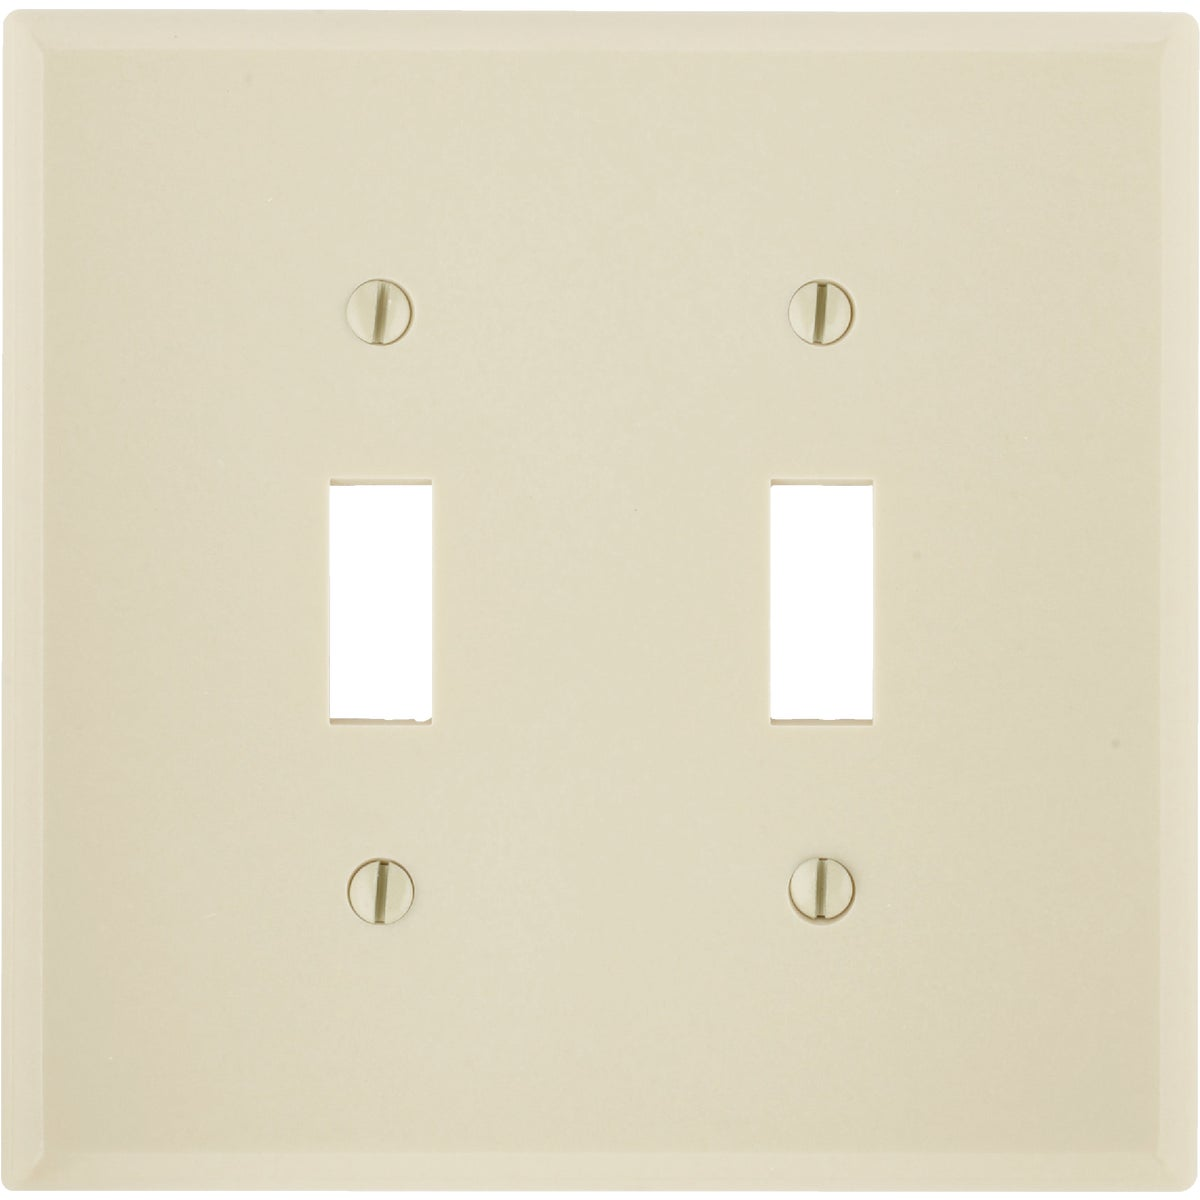 IV 2-TOGGLE WALL PLATE - 80509I by Leviton Mfg Co